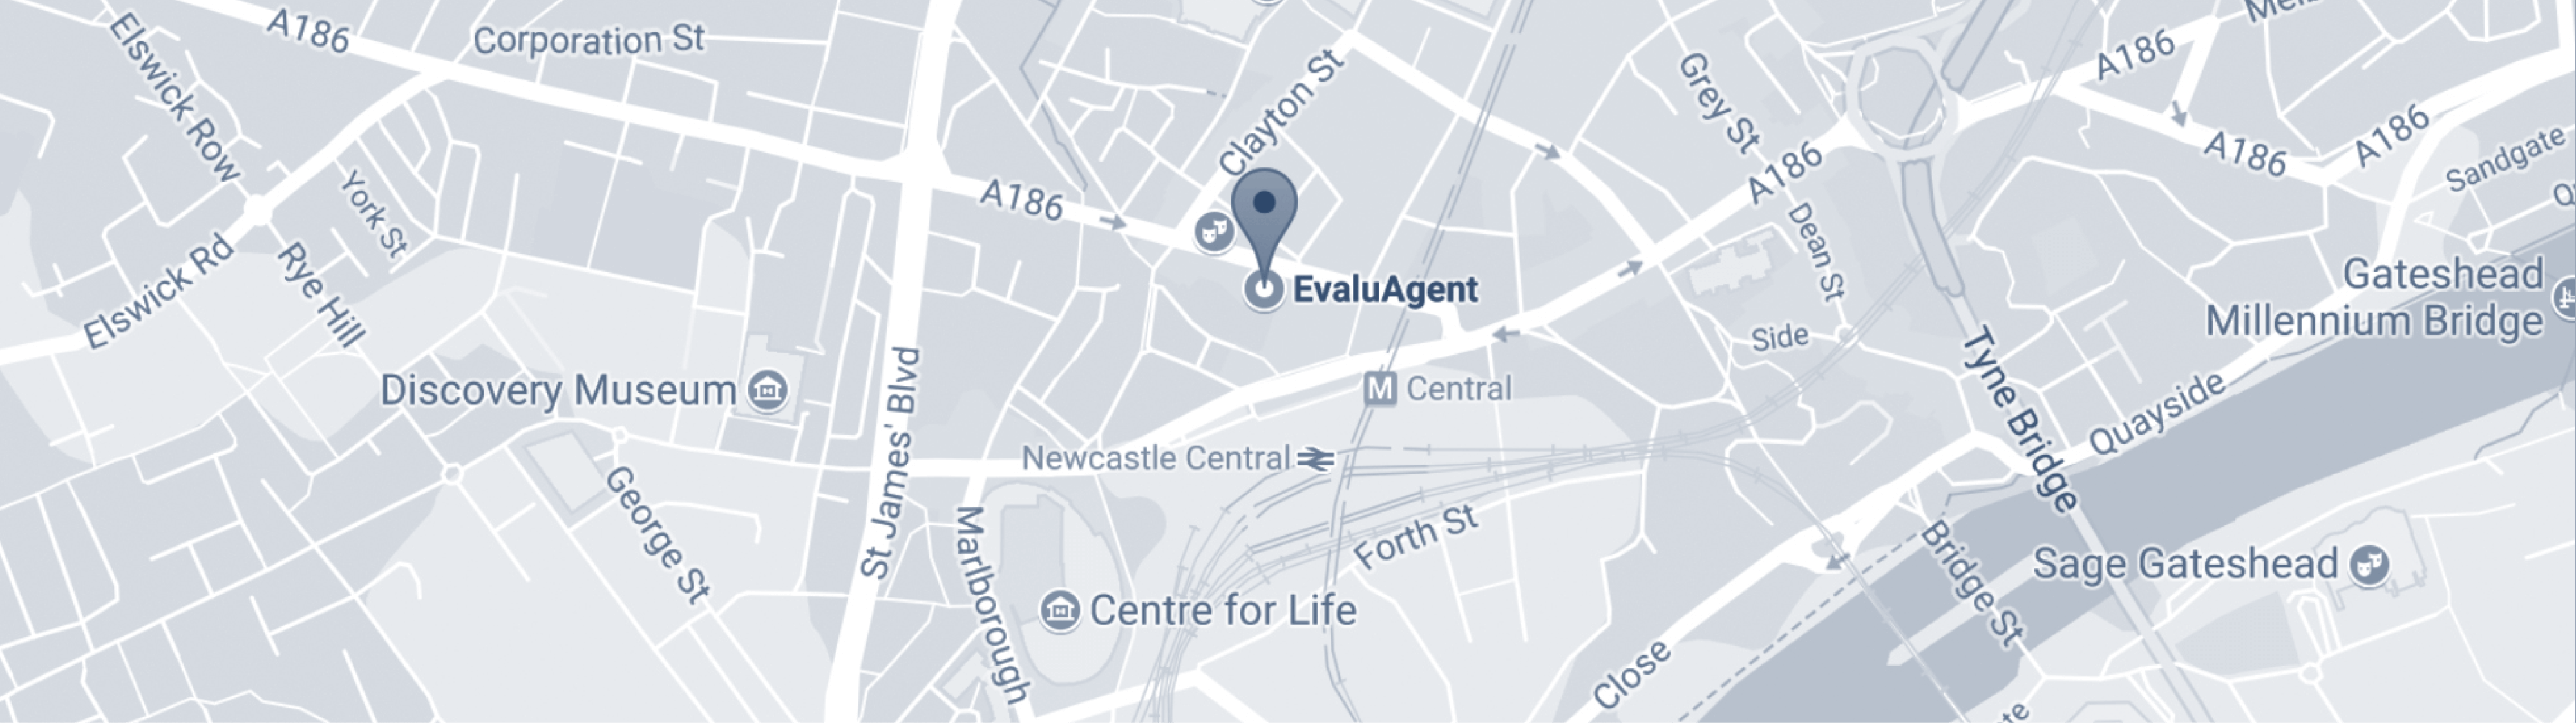 EvaluAgent Map.png